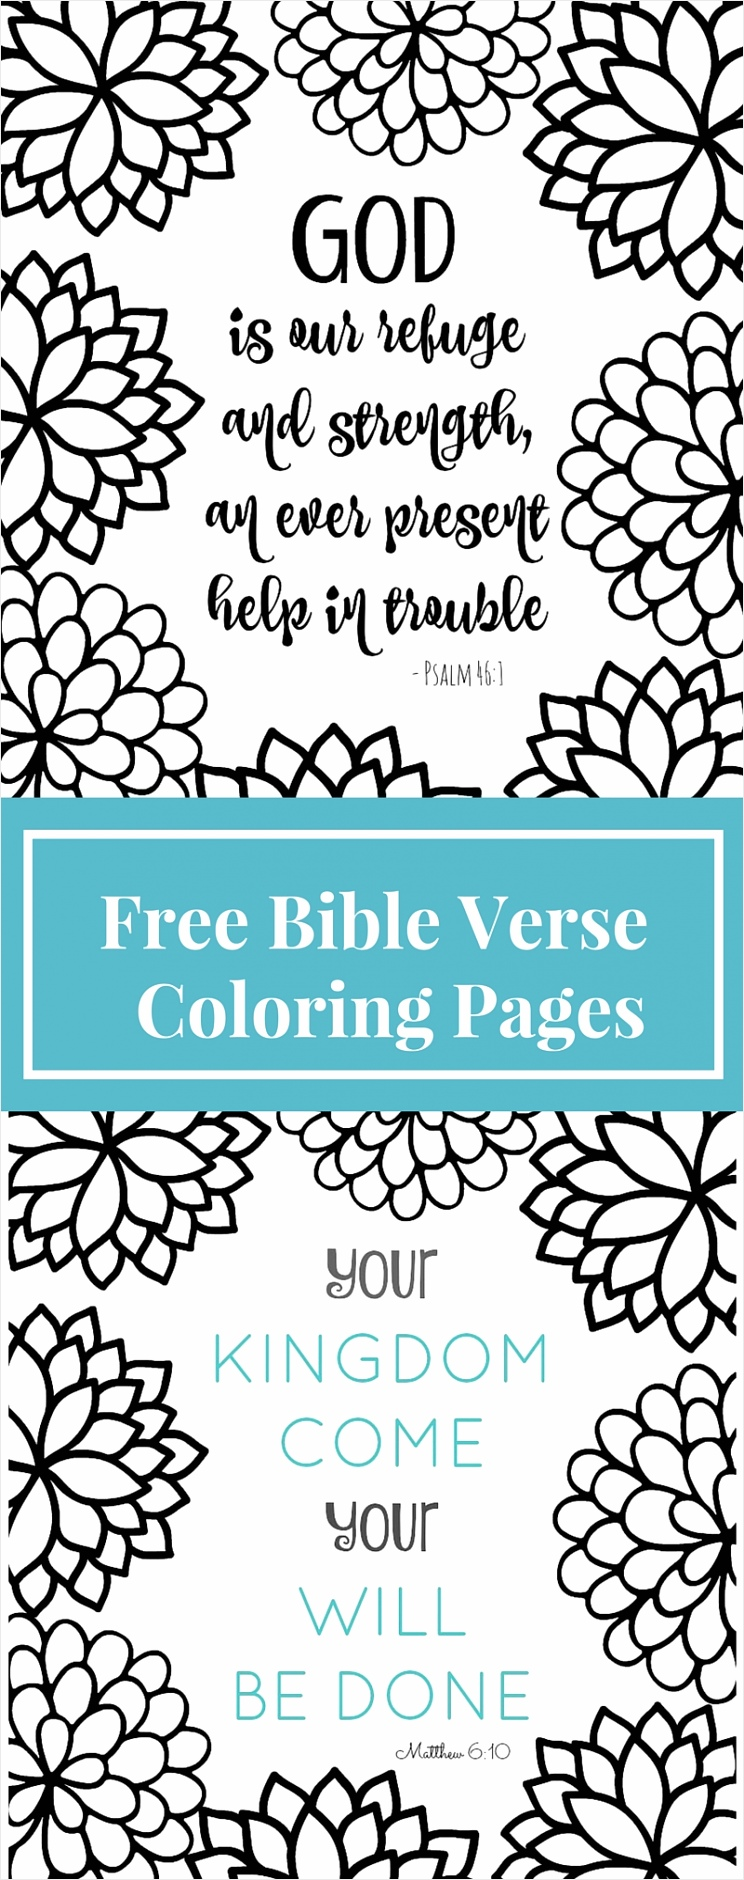 Bible Verse Coloring Pages uowmi